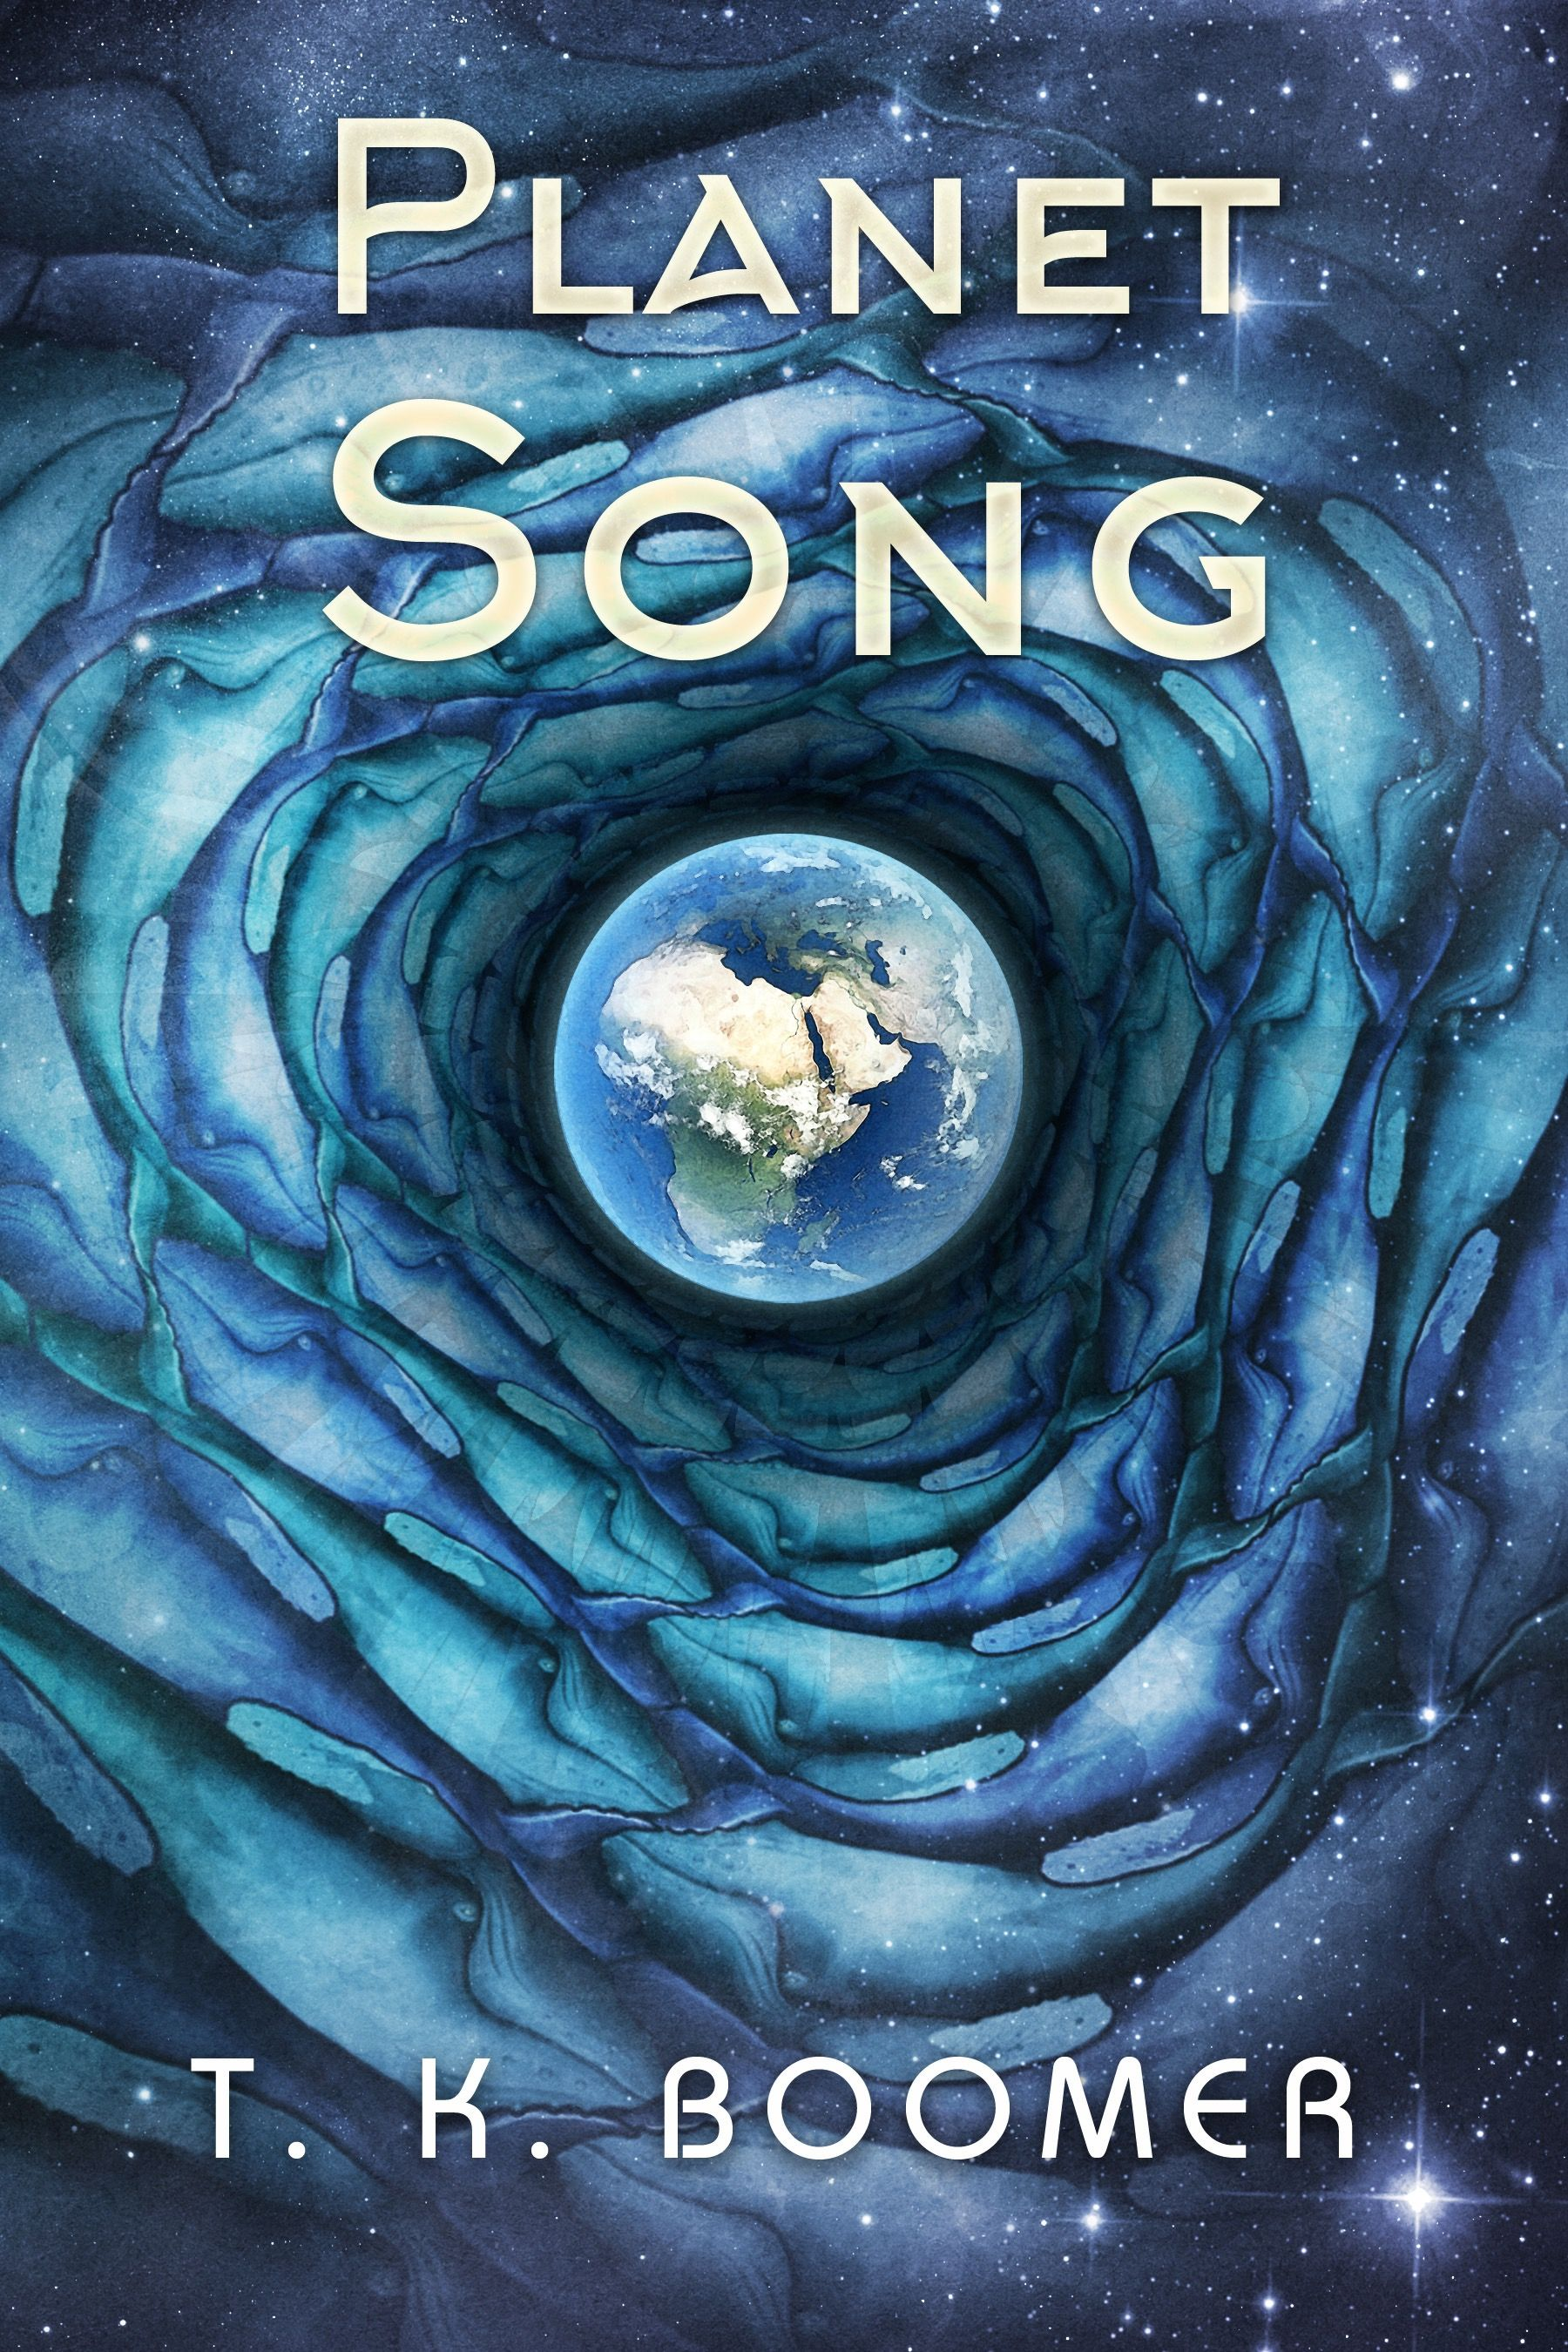 Planet song by tk boomer a first contact novel from the alien ebook deals on planet song by t boomer free and discounted ebook deals for planet song and other great books fandeluxe Gallery